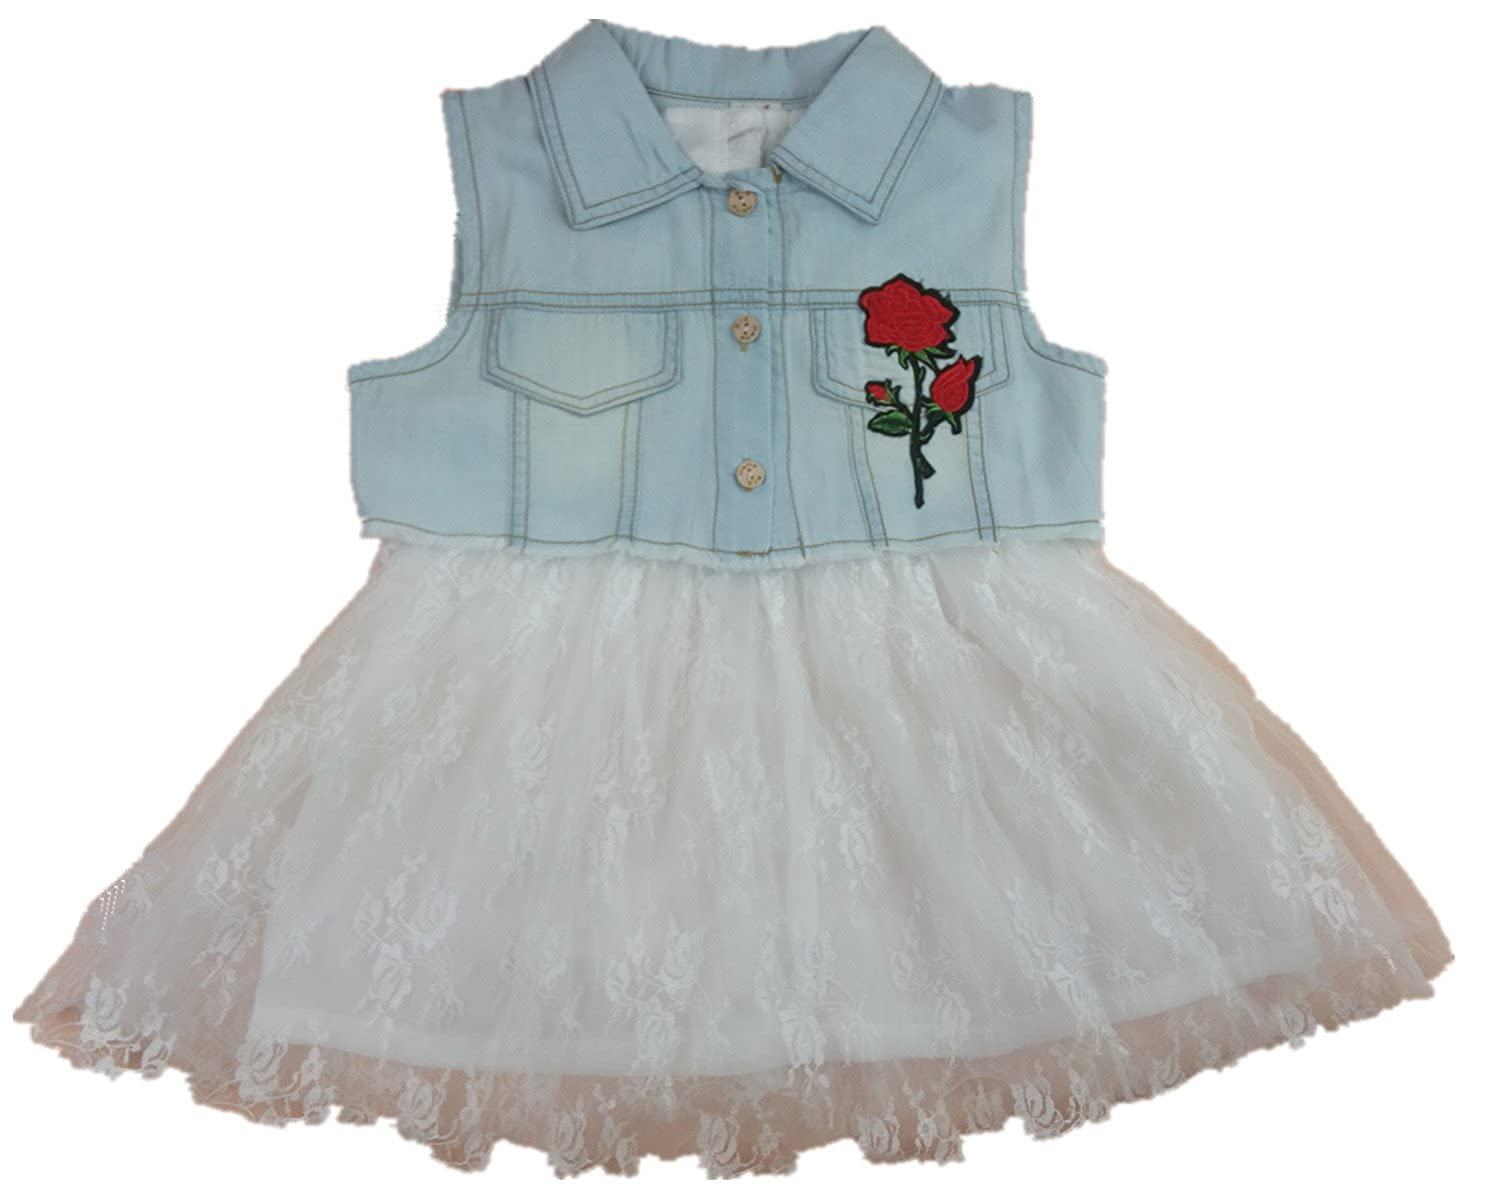 ESIINOY Girls Denim Floral Vest Outfit with Lace Chiffon Dress 2PCS